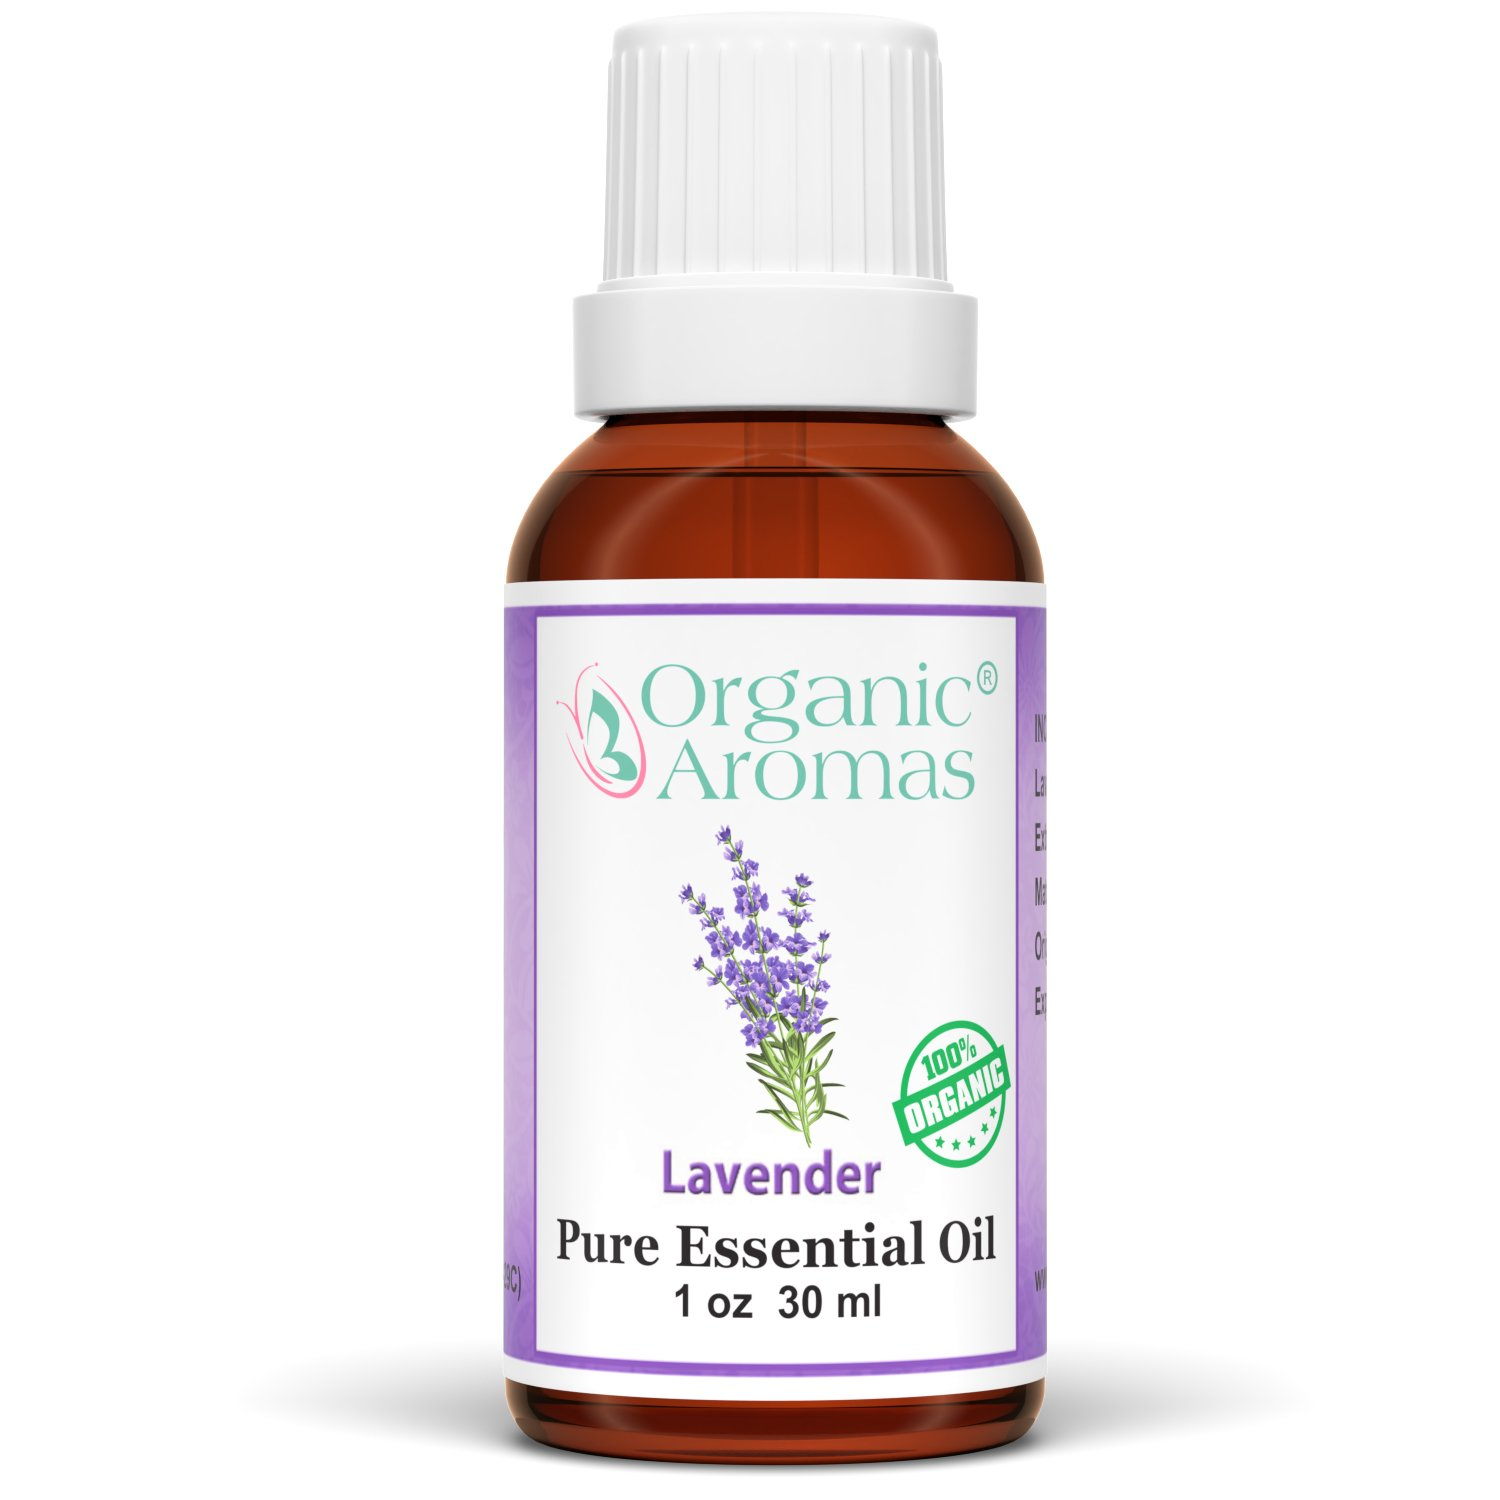 Lavender Essential Oil 100% Pure (Certified Organic) for Professional Aromatherapy - Therapeutic Grade Works well with Organic Aroma Diffusers - 30 ml bottle